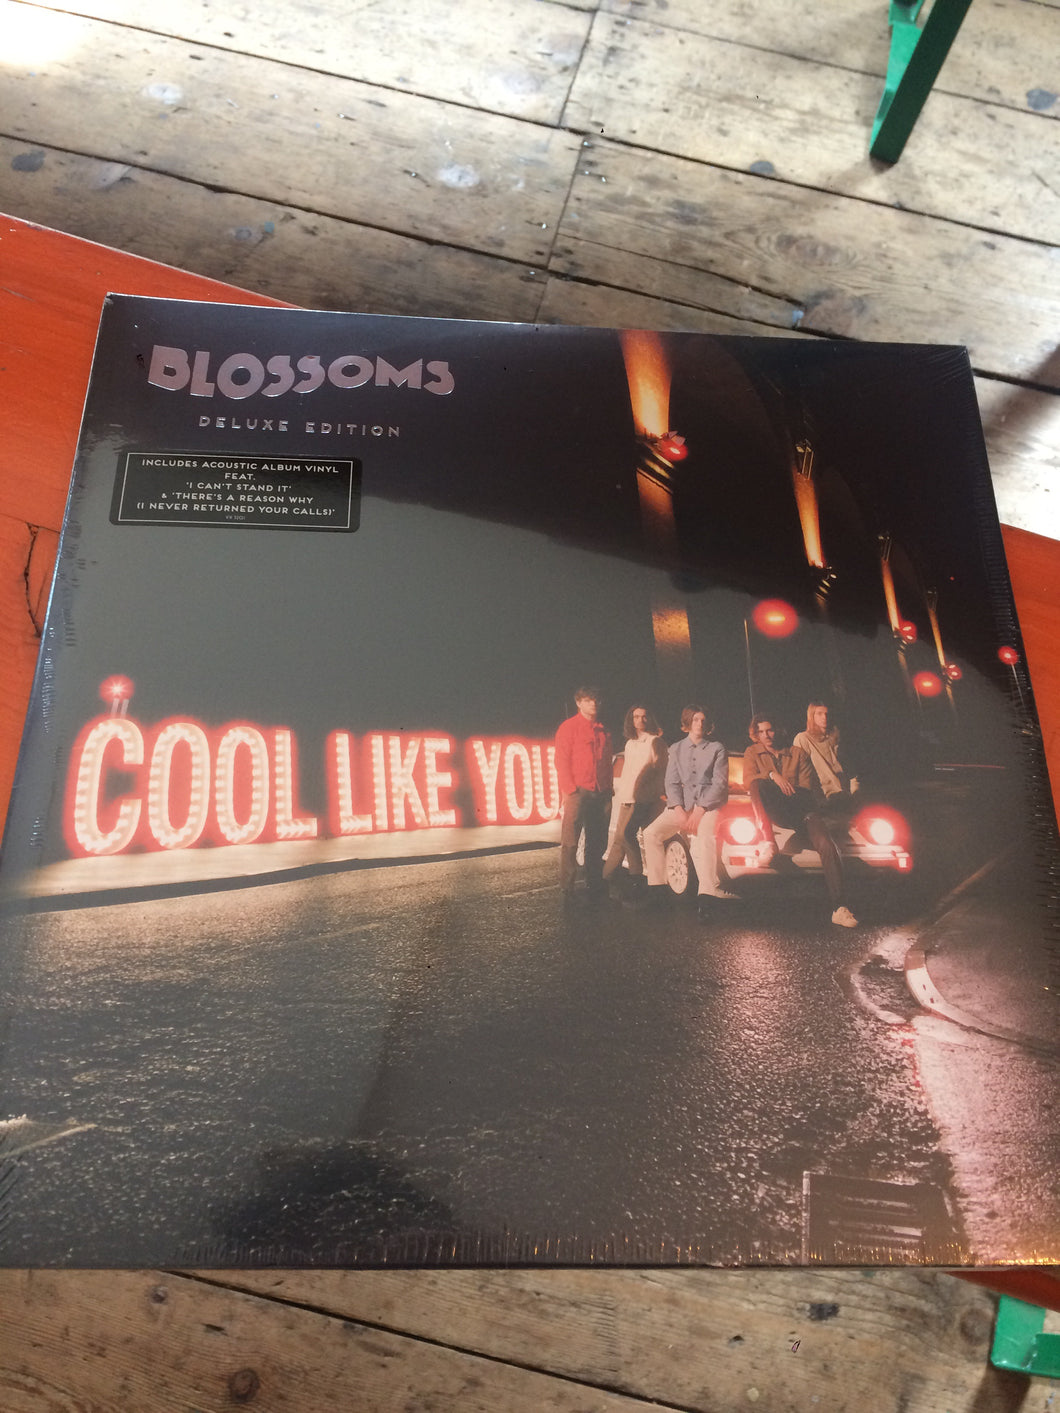 Blossoms - Cool Like You - Deluxe Edition